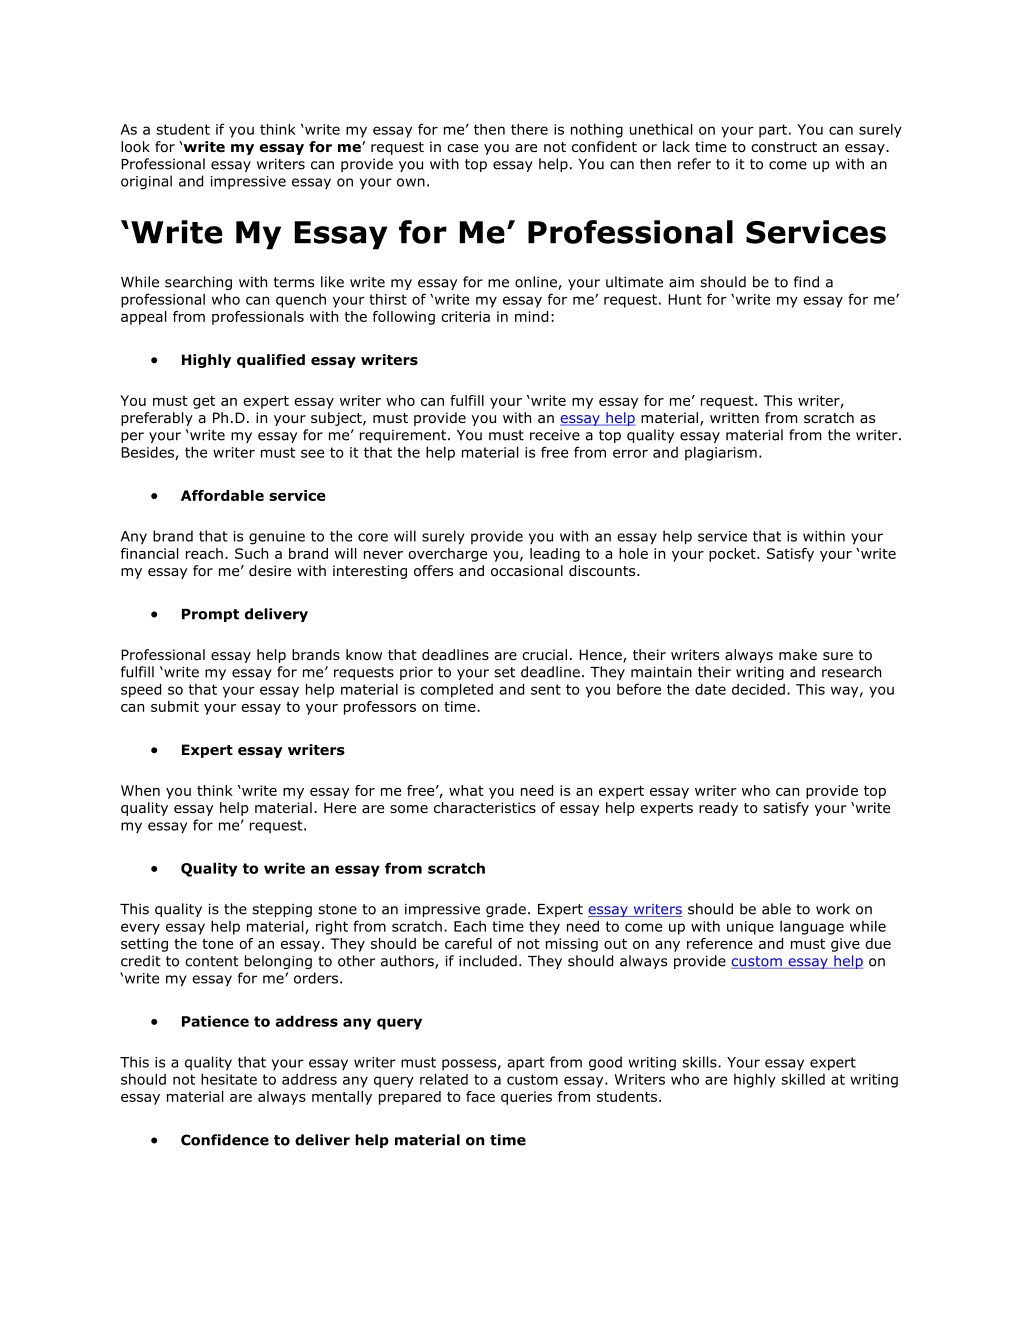 017 Write My Essay For Me Example As Student If You Think Surprising Generator 4 Me.org College Free Full